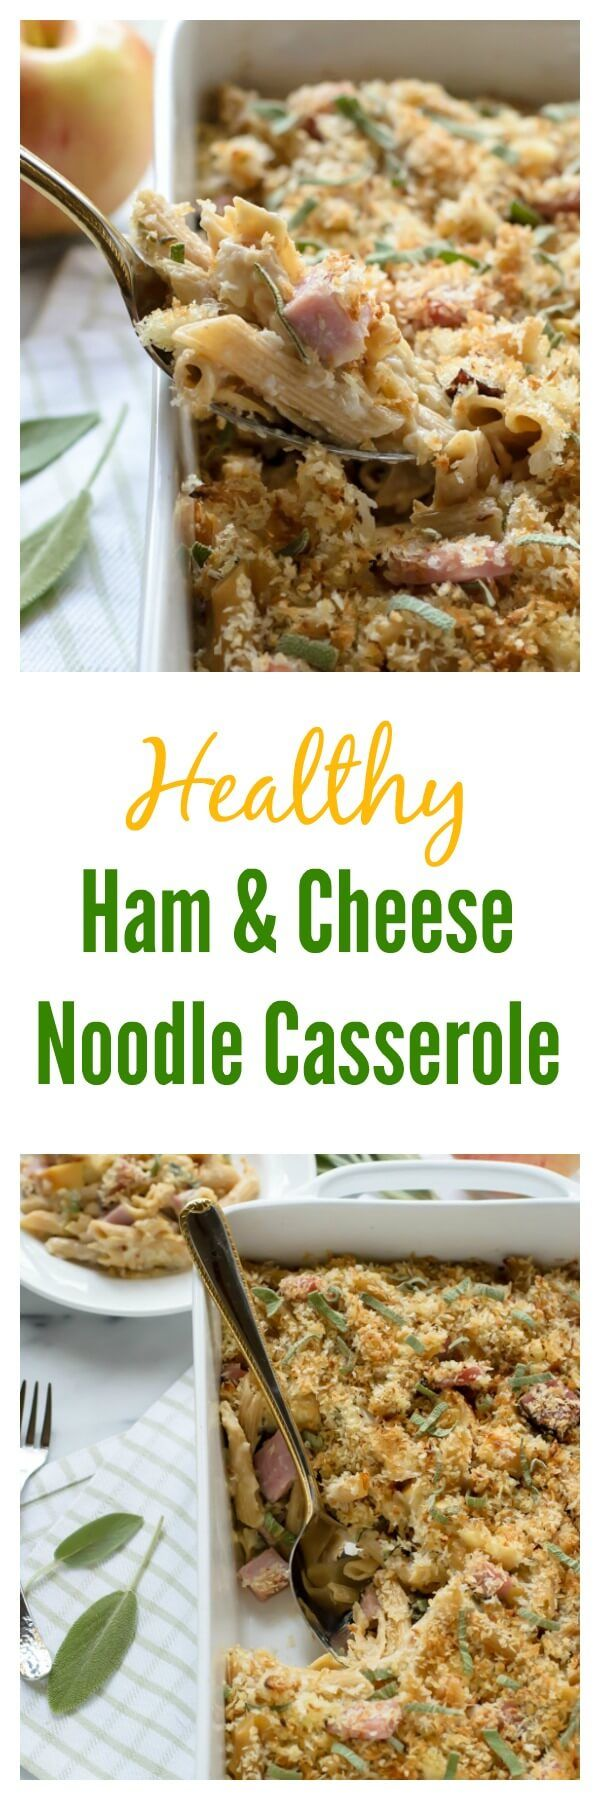 Healthy Ham and Cheese Noodle Casserole. A lightened up version of ham and cheese casserole studded with fresh apples and sage.